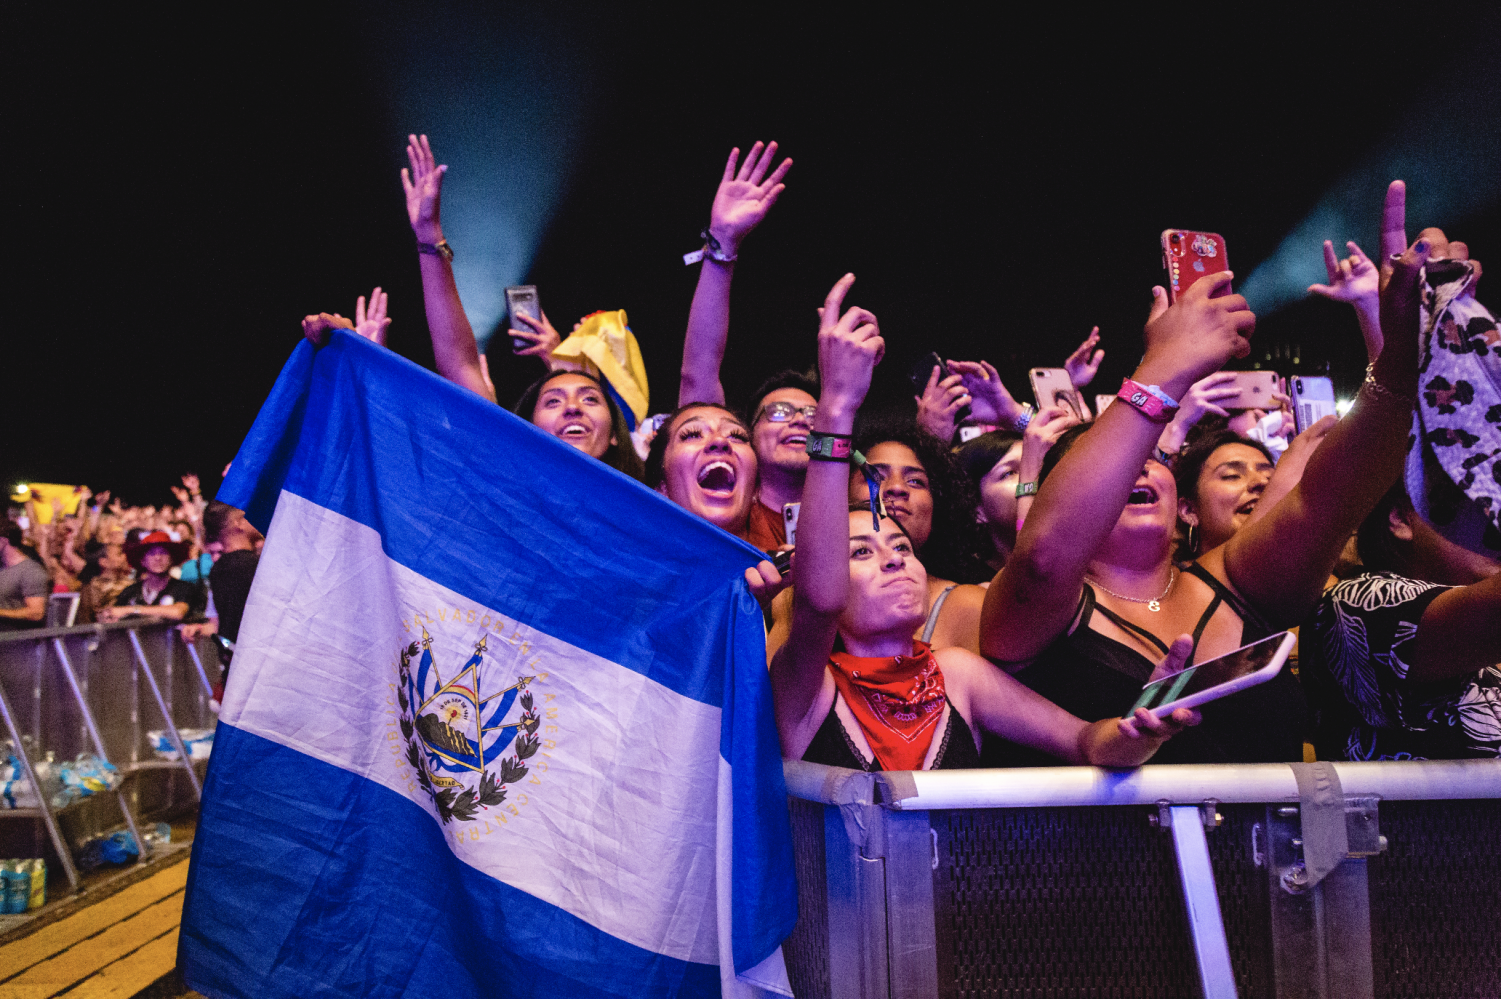 Fans+proudly+fly+the+flag+of+El+Salvador+at+J+Balvin%27s+Lollapalooza+set%2C+Aug.+8.